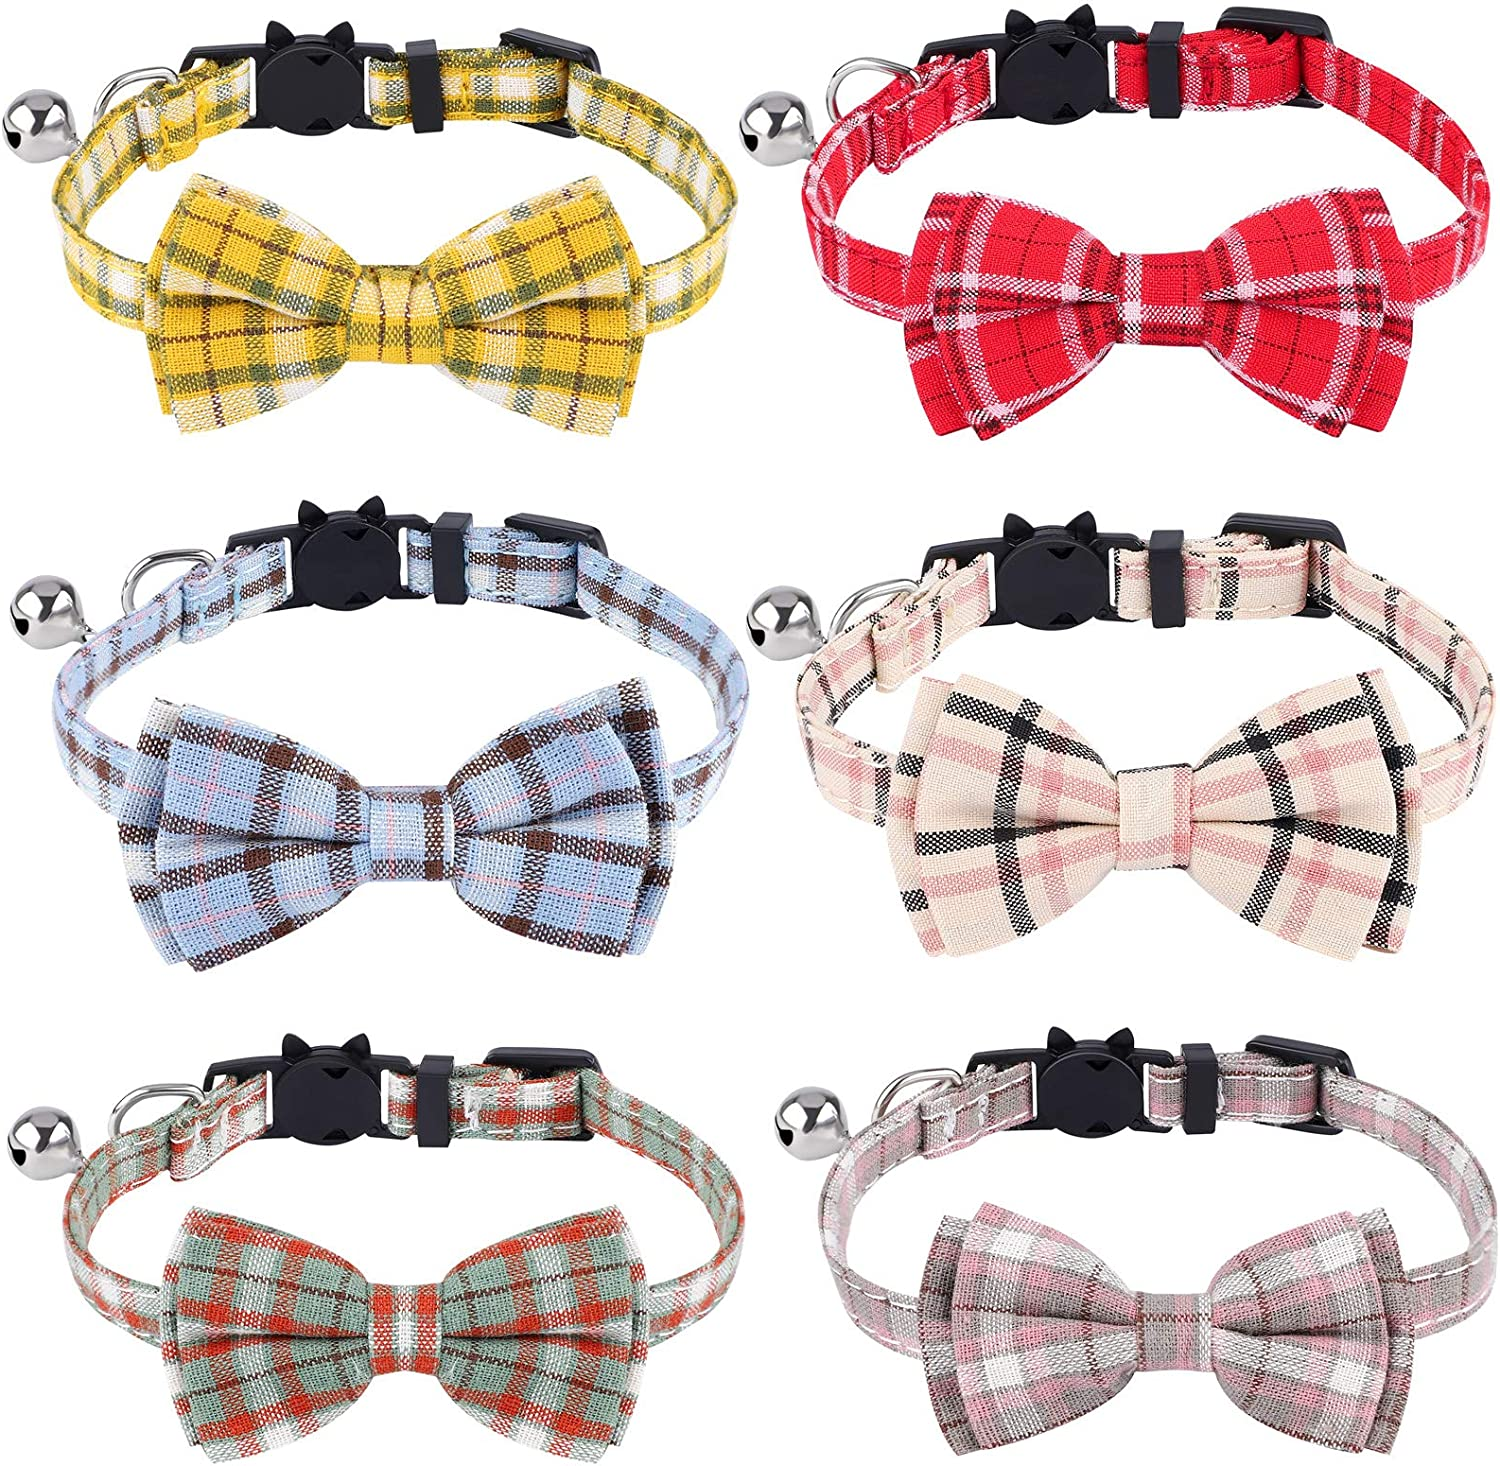 Small Dog Puppy URATOT 6 Pieces Cat Collars with Bow Tie and Bell Breakaway Cat Collars Plaid Kitten Collar Safety Kitty Collars Adjustable Buckle Collars for Cat